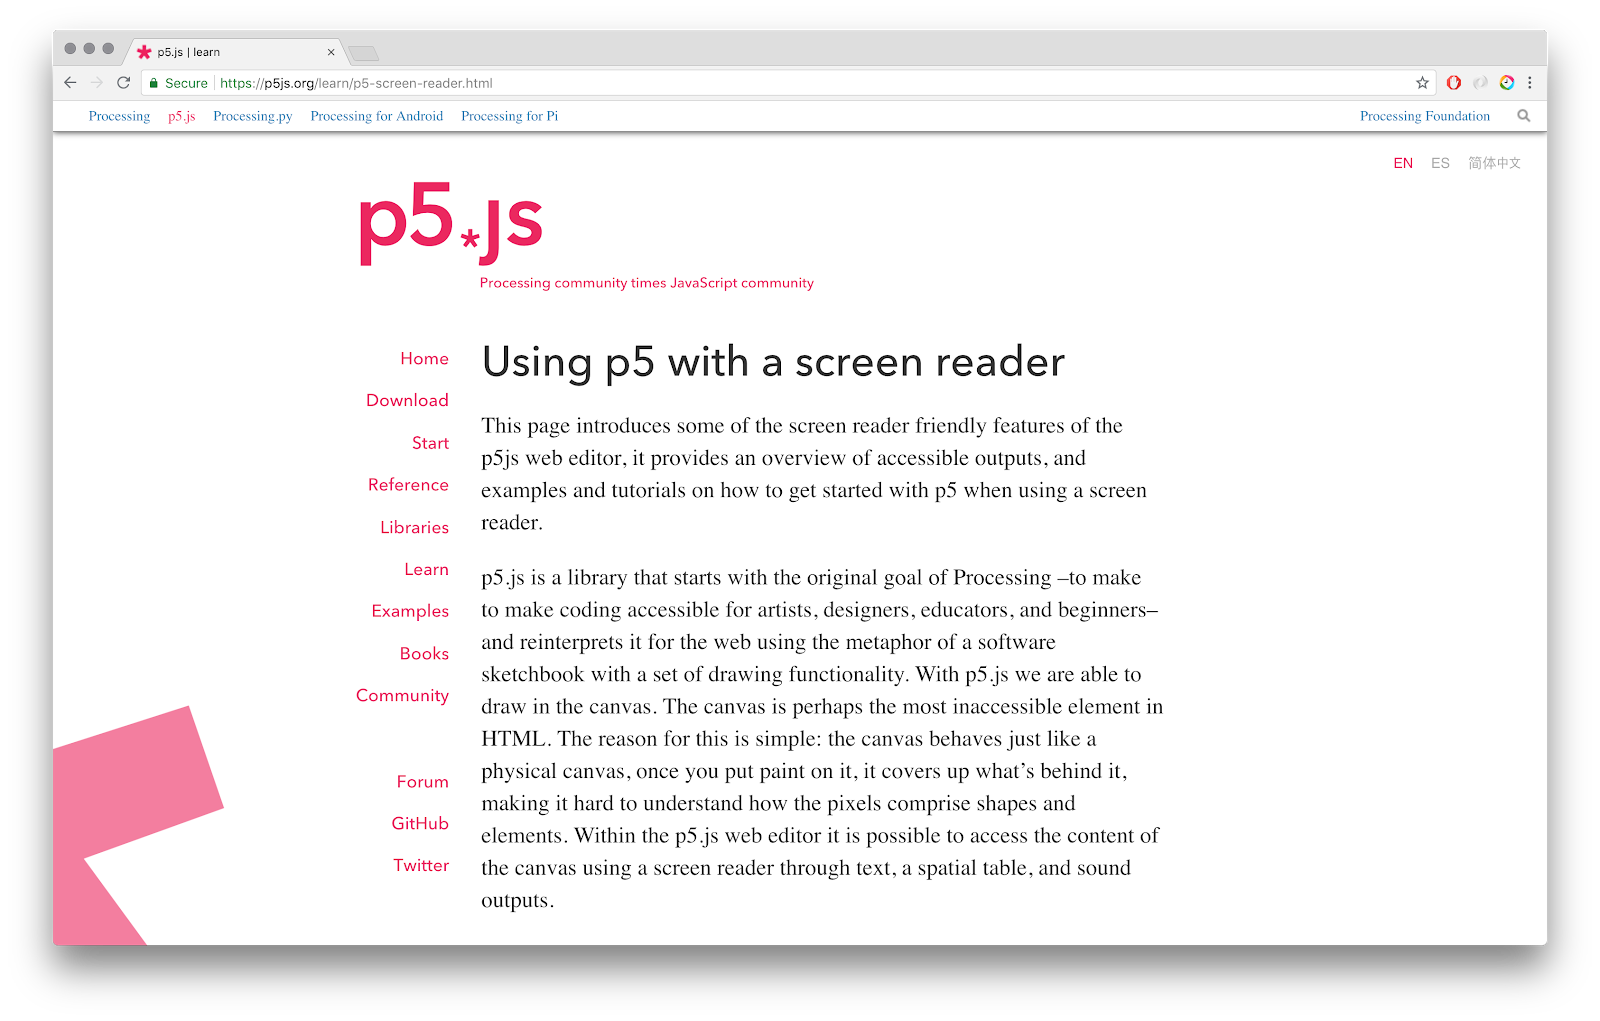 Working on the p5 accessibility Project - Processing Foundation - Medium